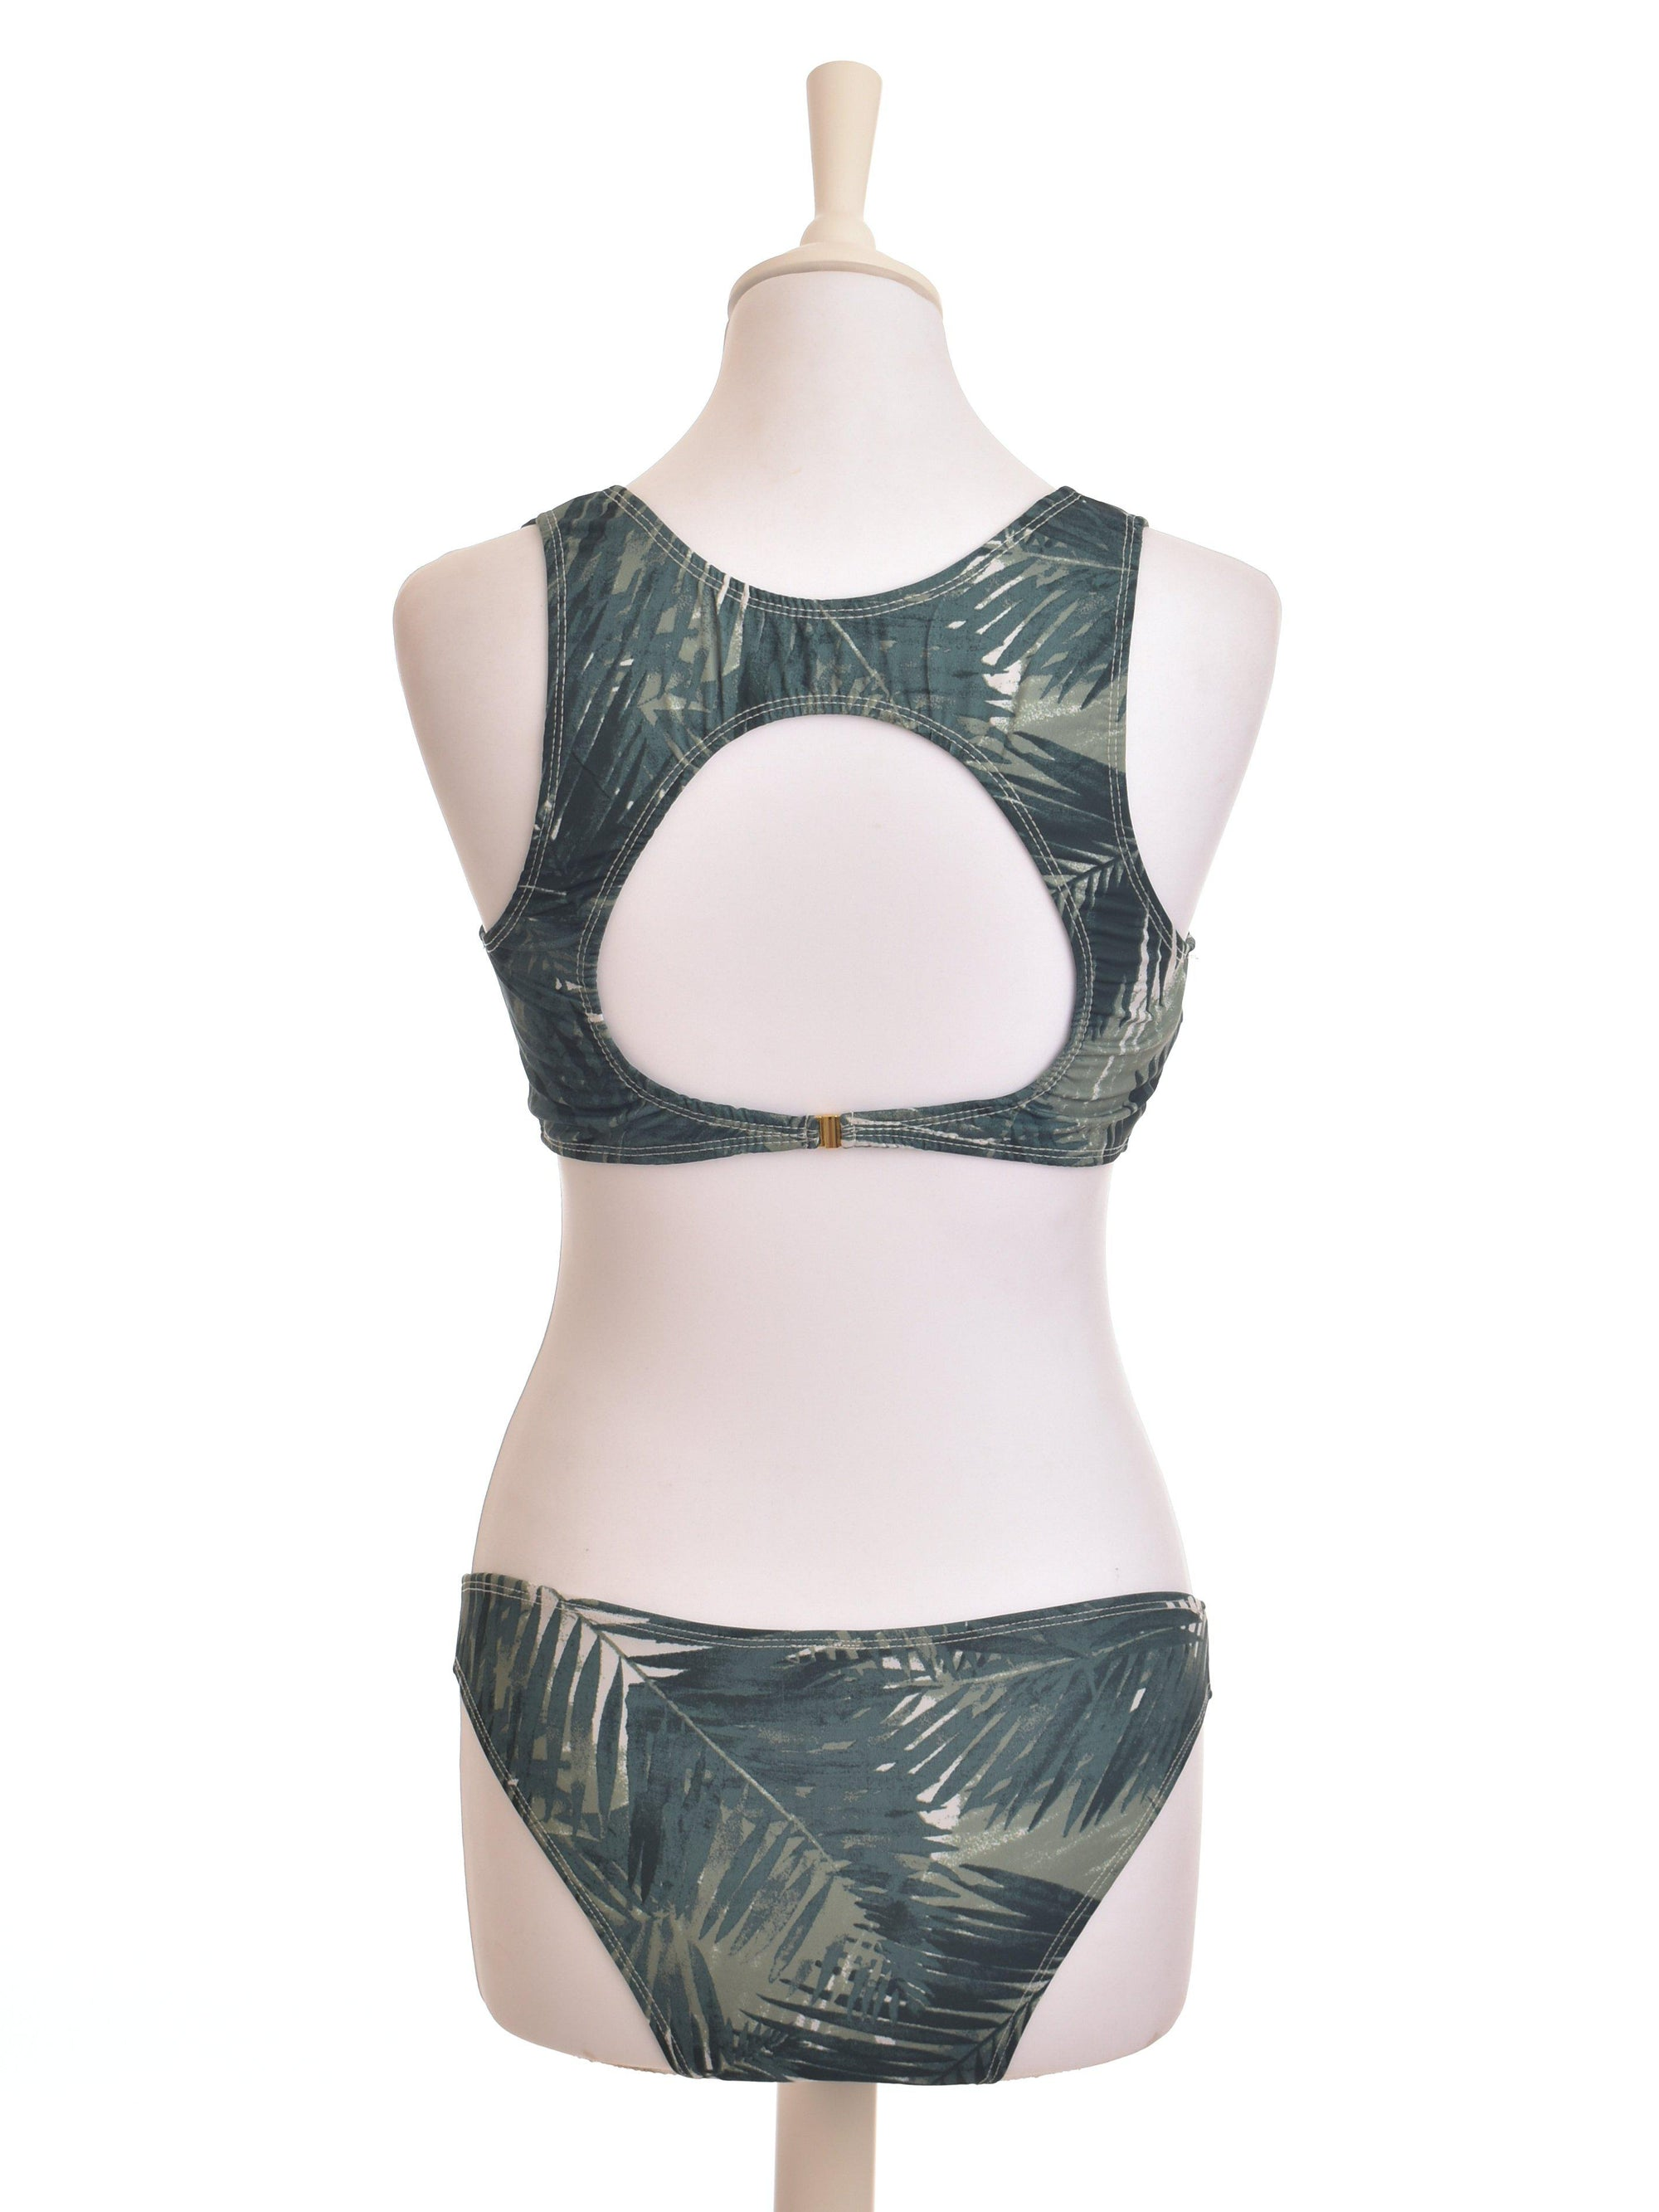 Bikini i Palmeprint fra Underprotection